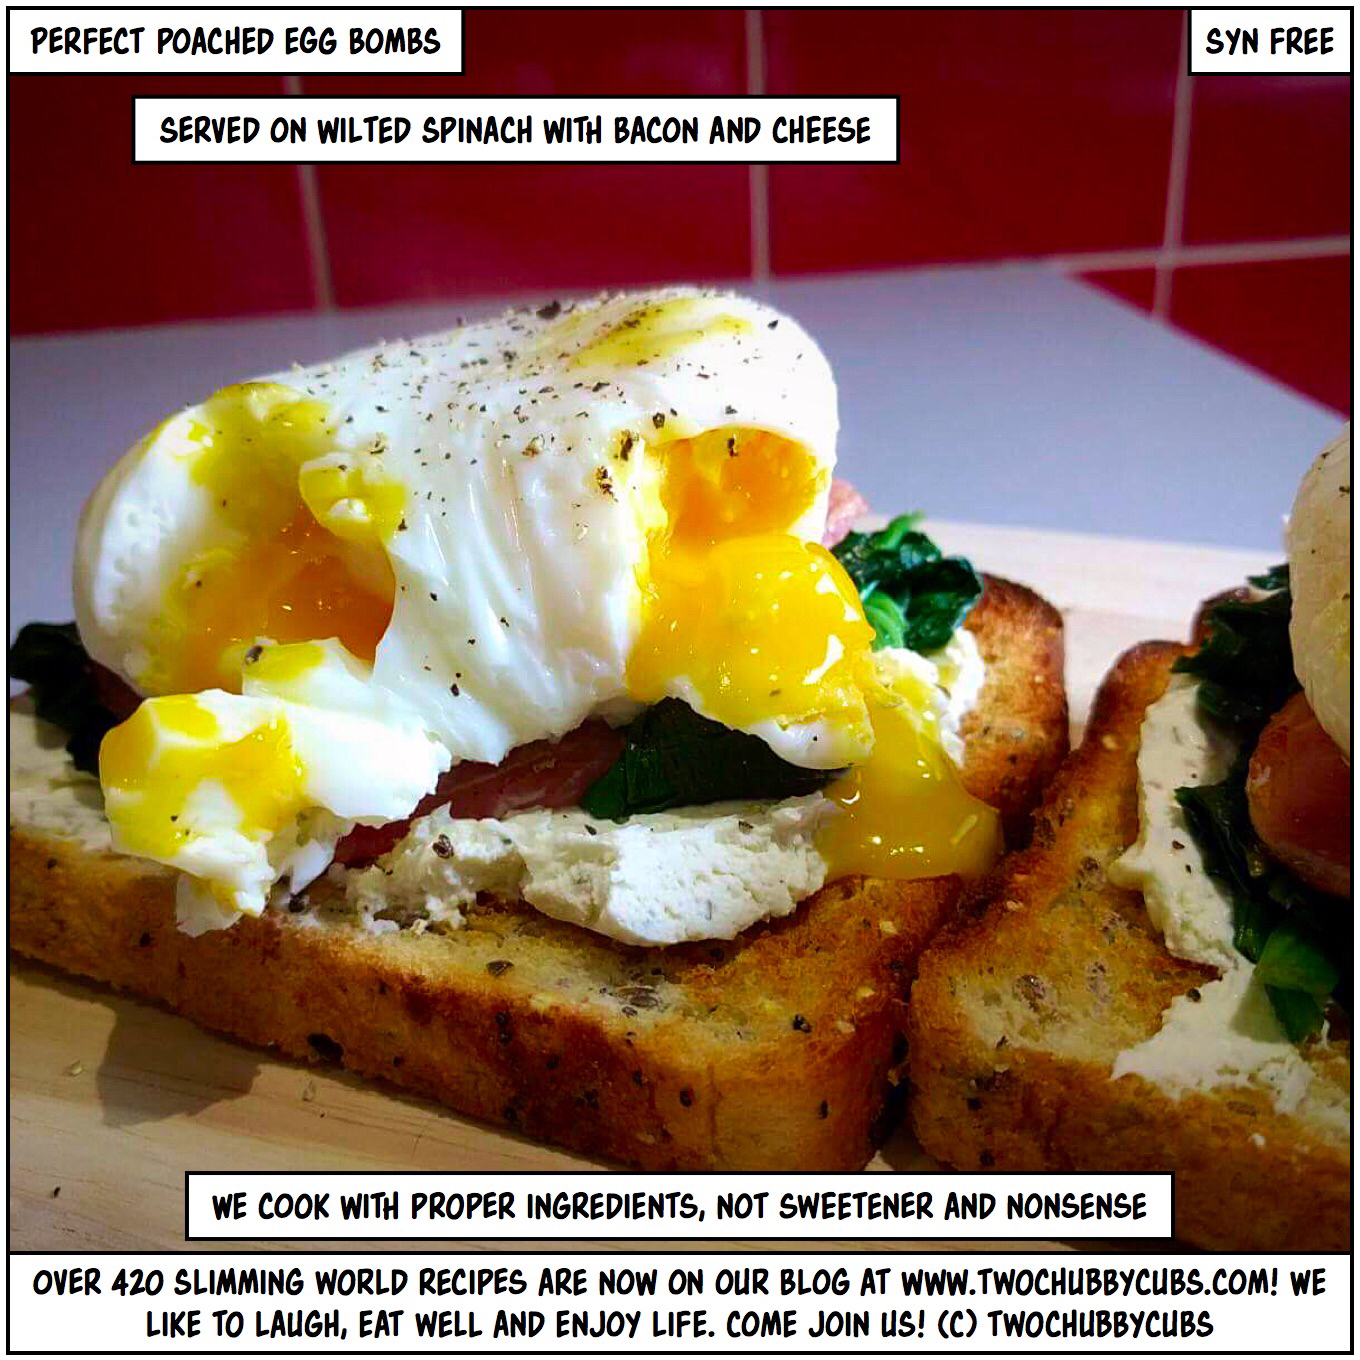 Perfect poached egg bombs poaching eggs made easy Slimming world recipes for 1 person